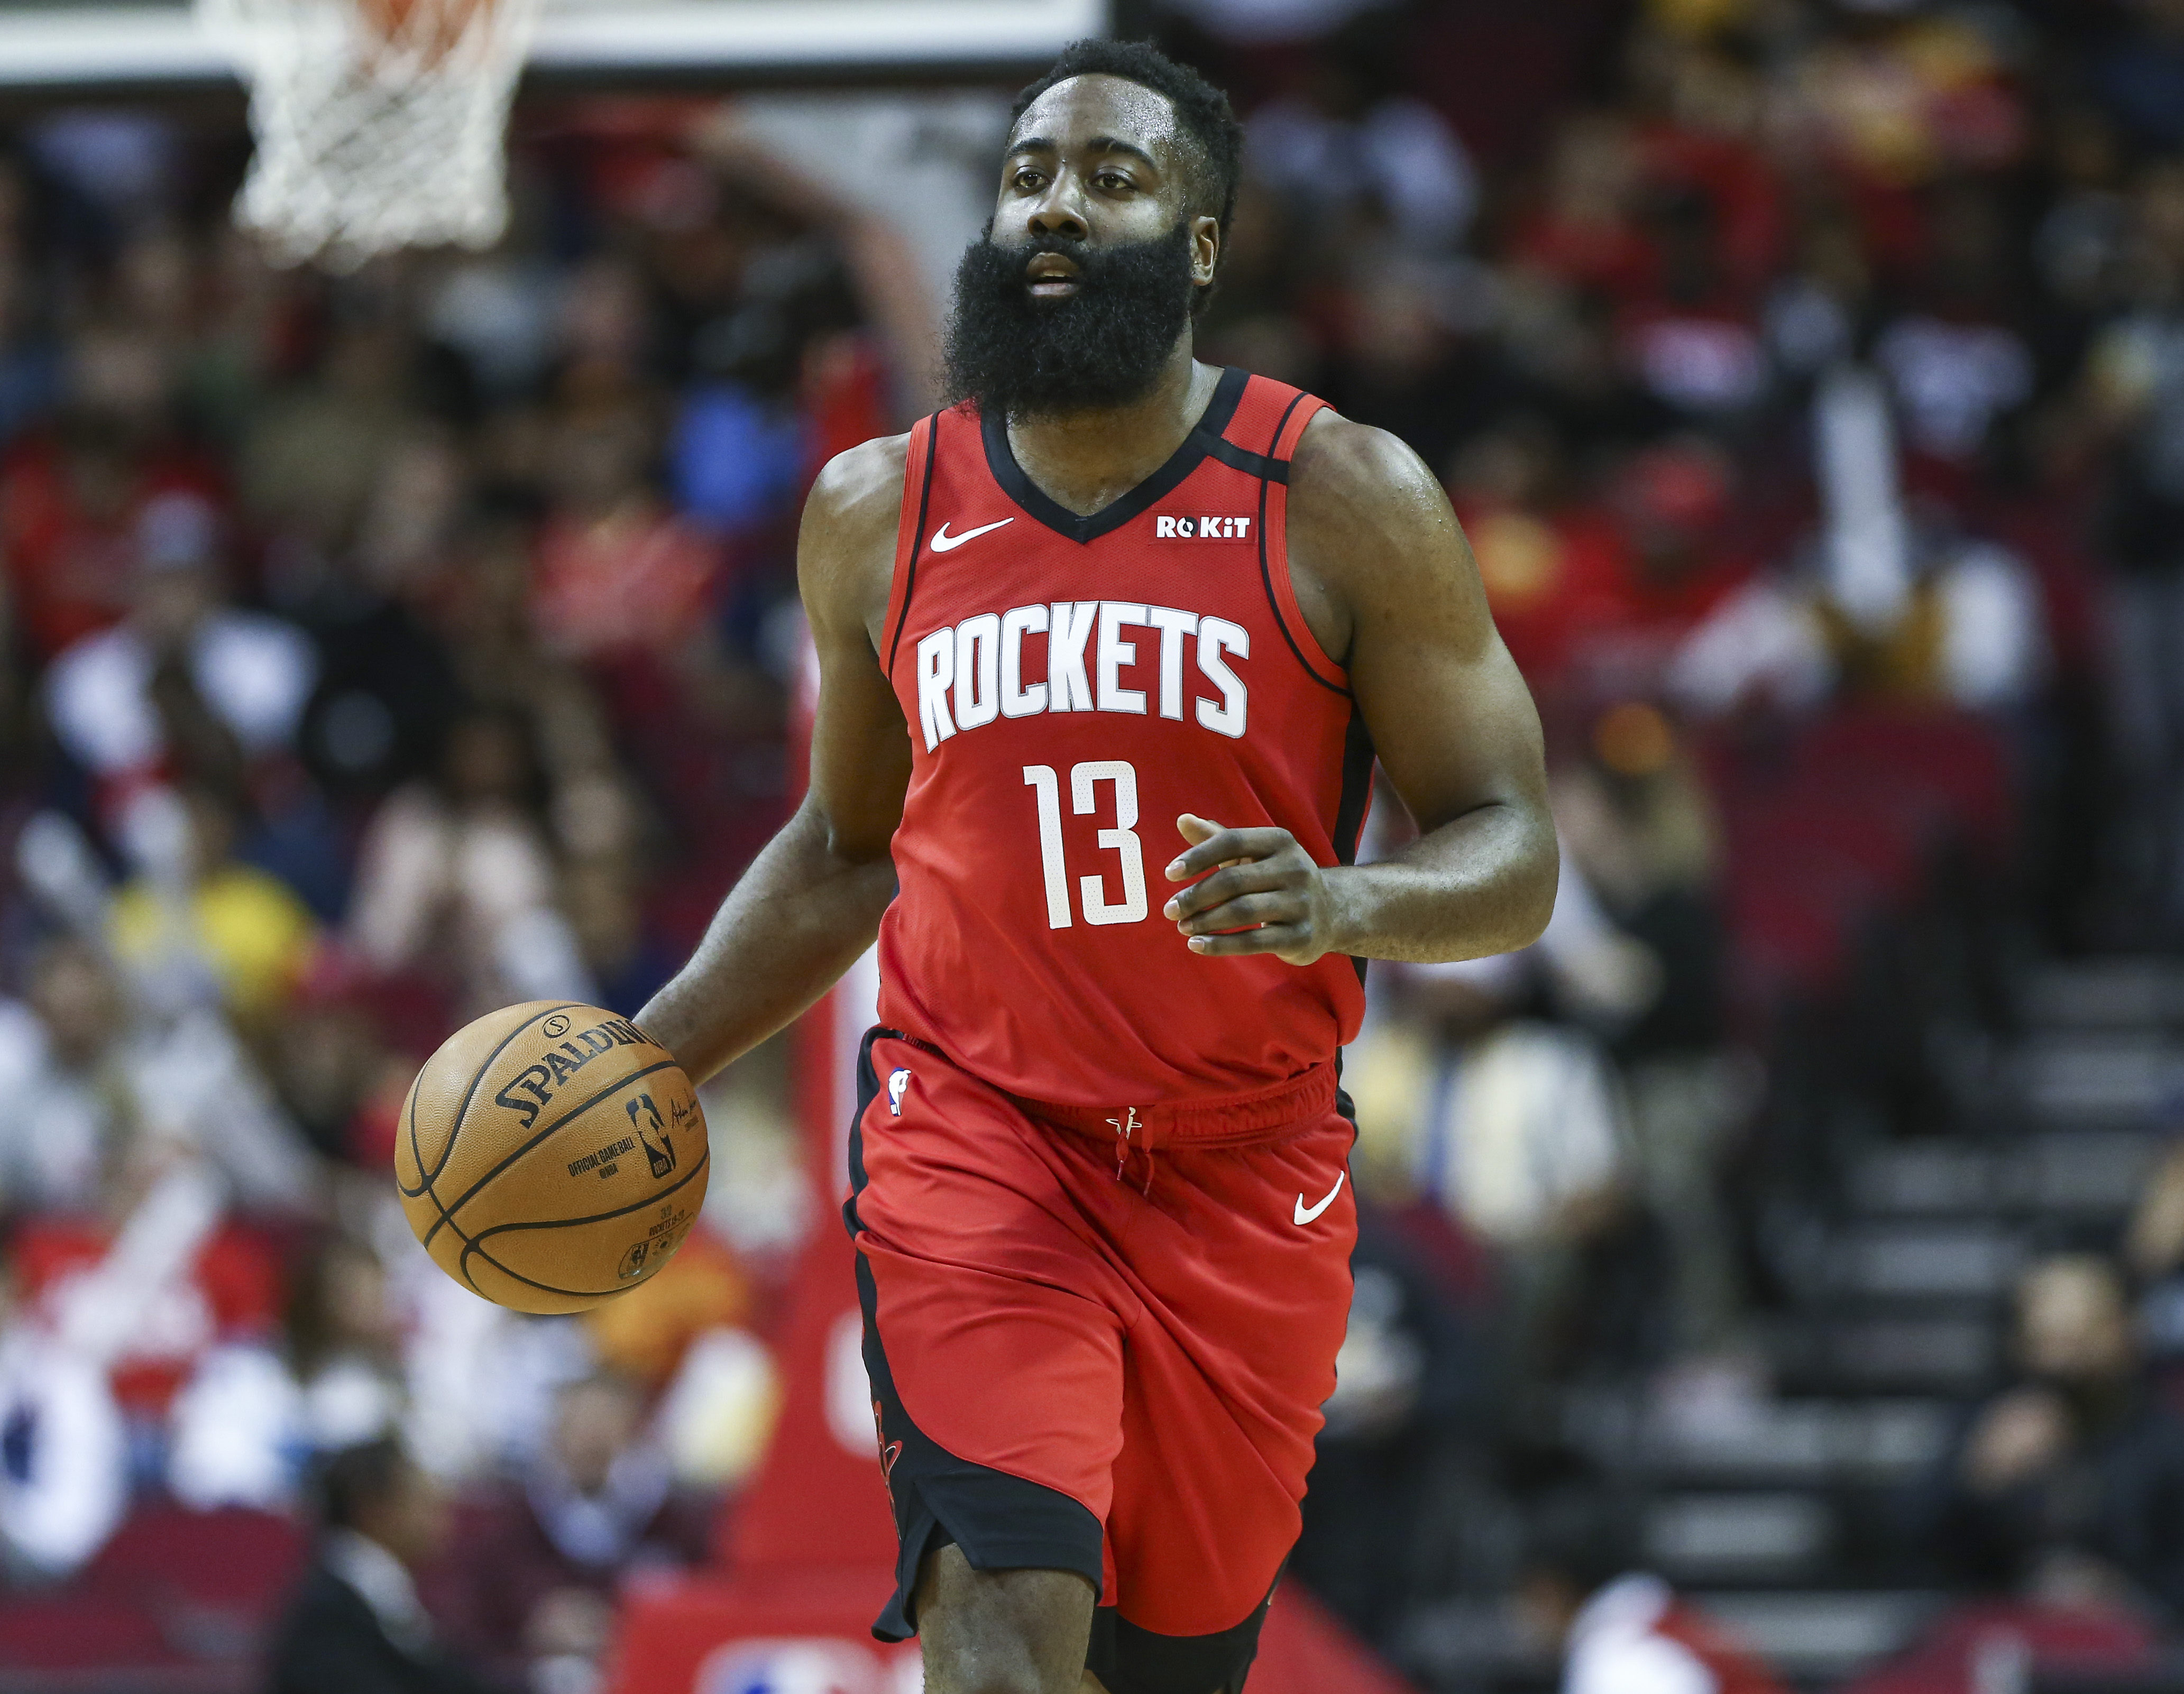 Houston Rockets guard James Harden dribbles the ball during the first quarter against the Los Angeles Clippers at Toyota Center.